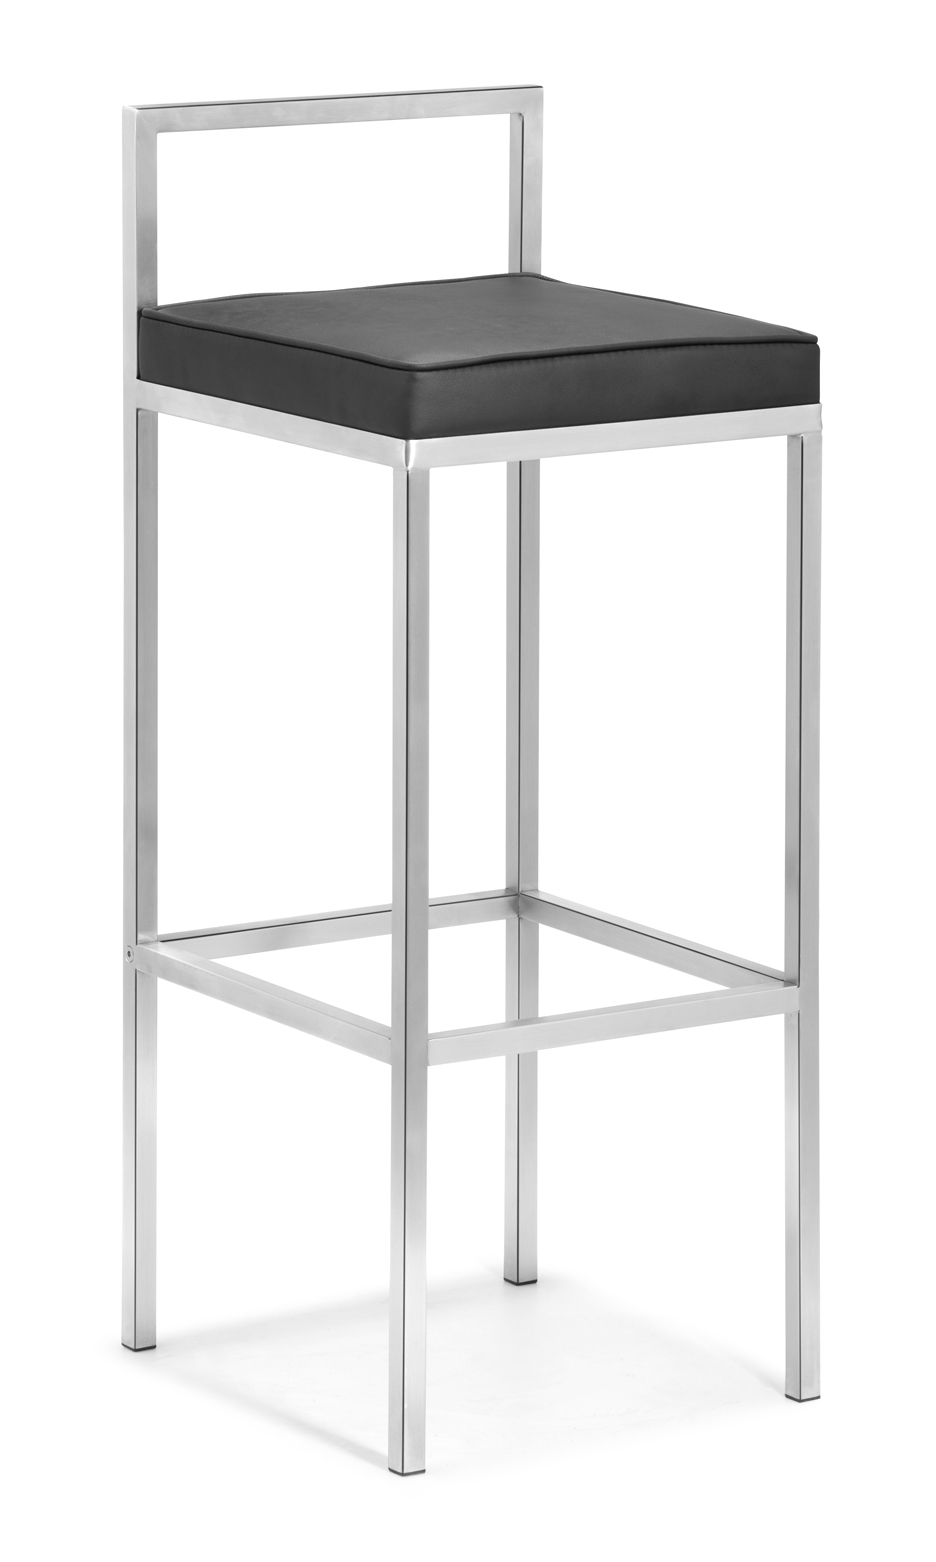 chic modern cymax bar stools with black leather seat and silver metal legs for home furniture ideas